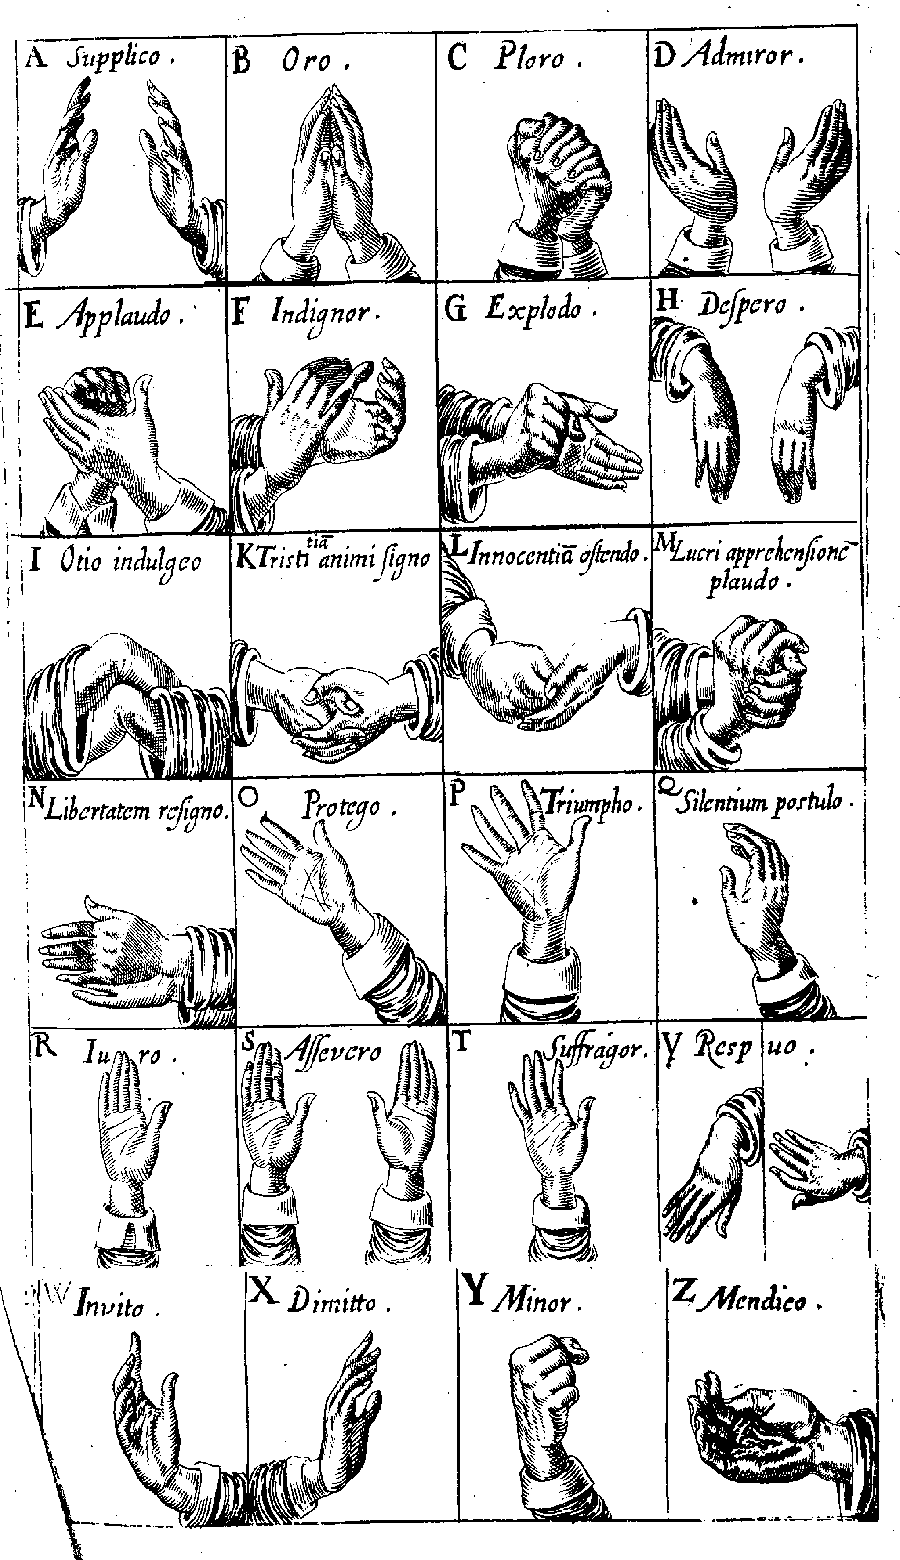 Sexually suggestive hand gestures